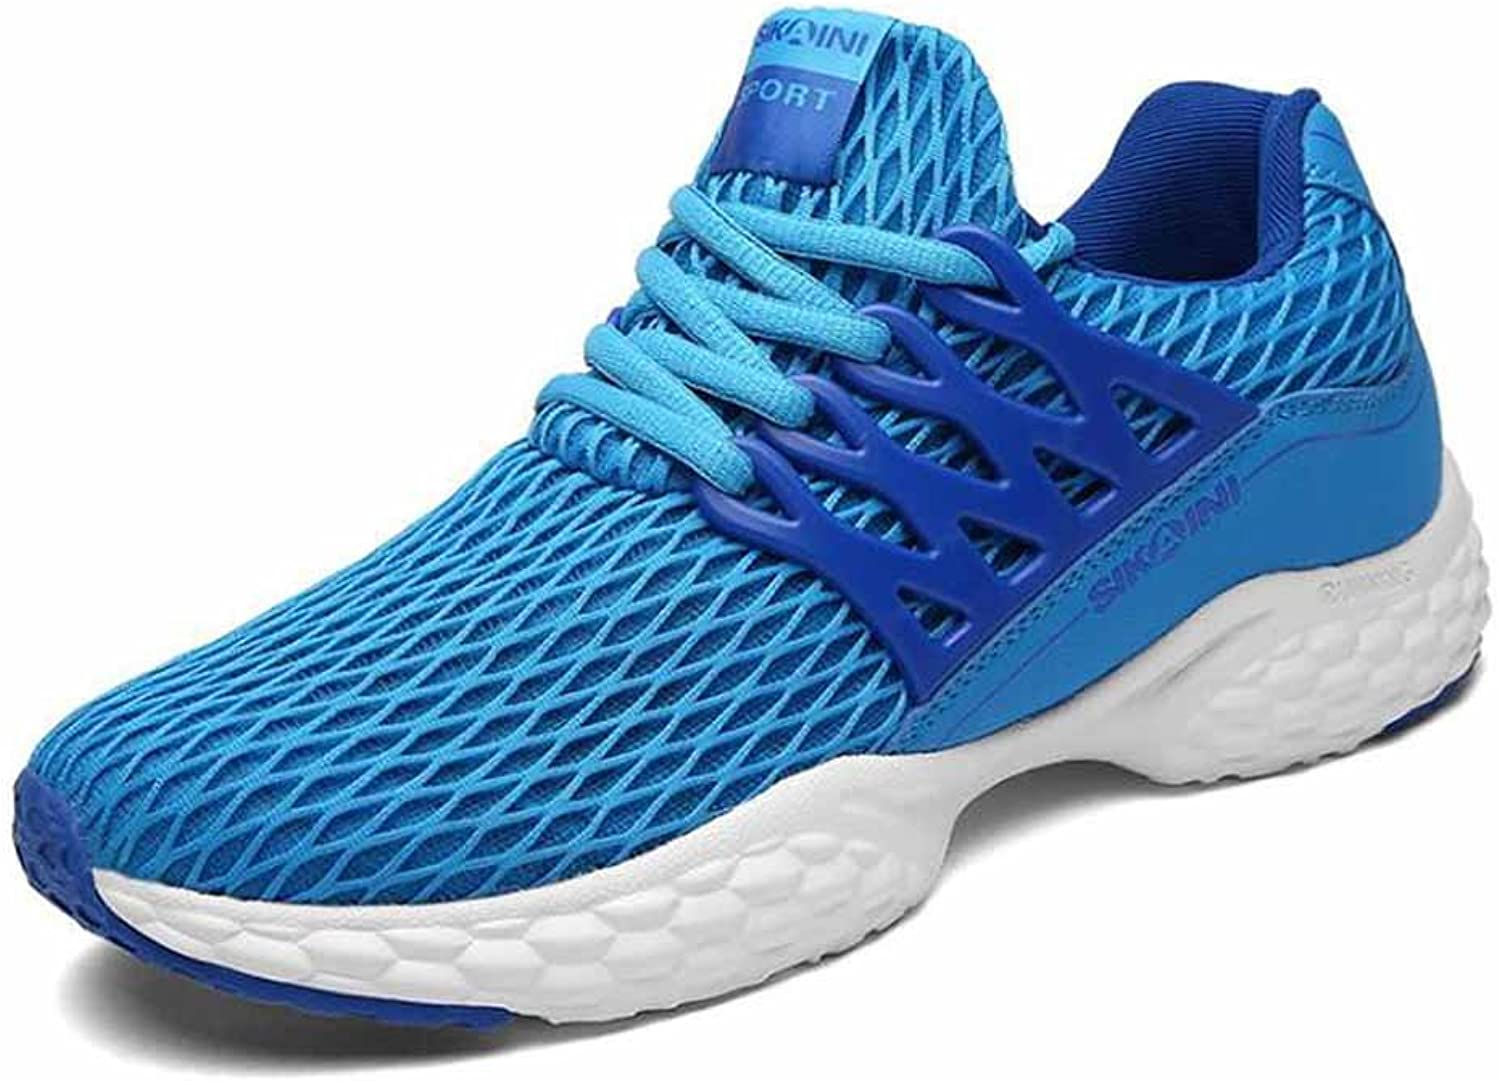 GLSHI Men Casual Athletic shoes Autumn New Students Sports Hiking shoes Breathable Mesh Sneakers